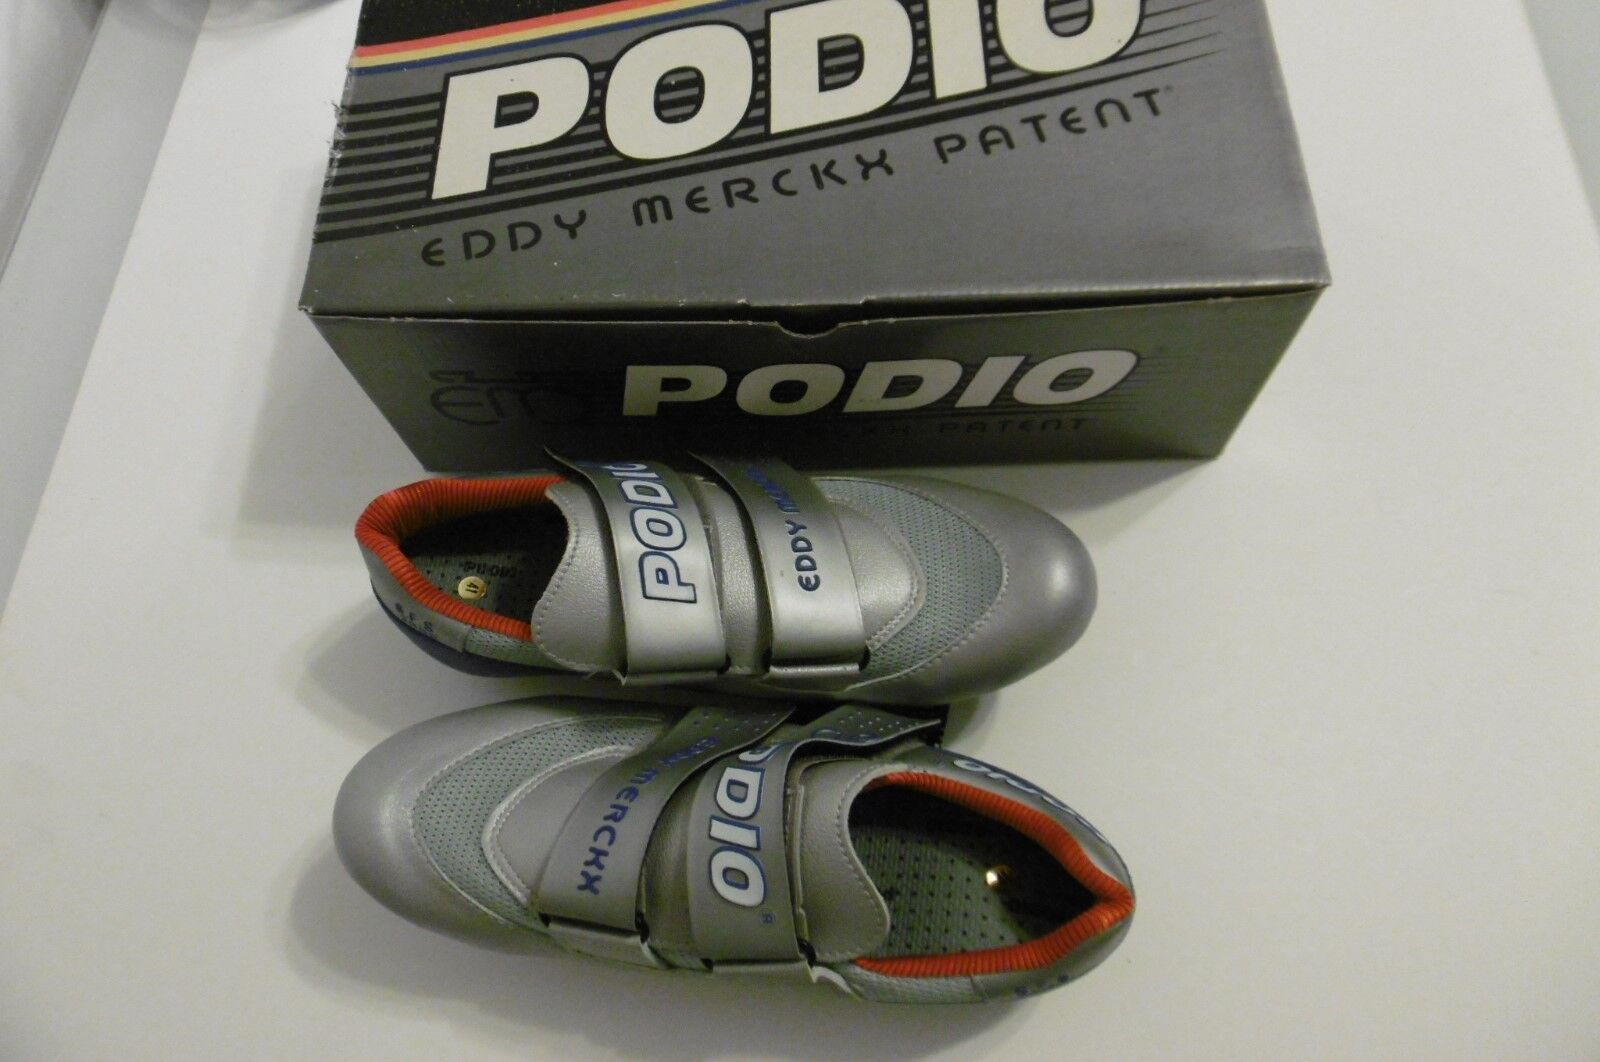 Eddy Merckx Patent Podio S.F.S.2000 Shoes Size 41 With Shoe Cleats New In Box